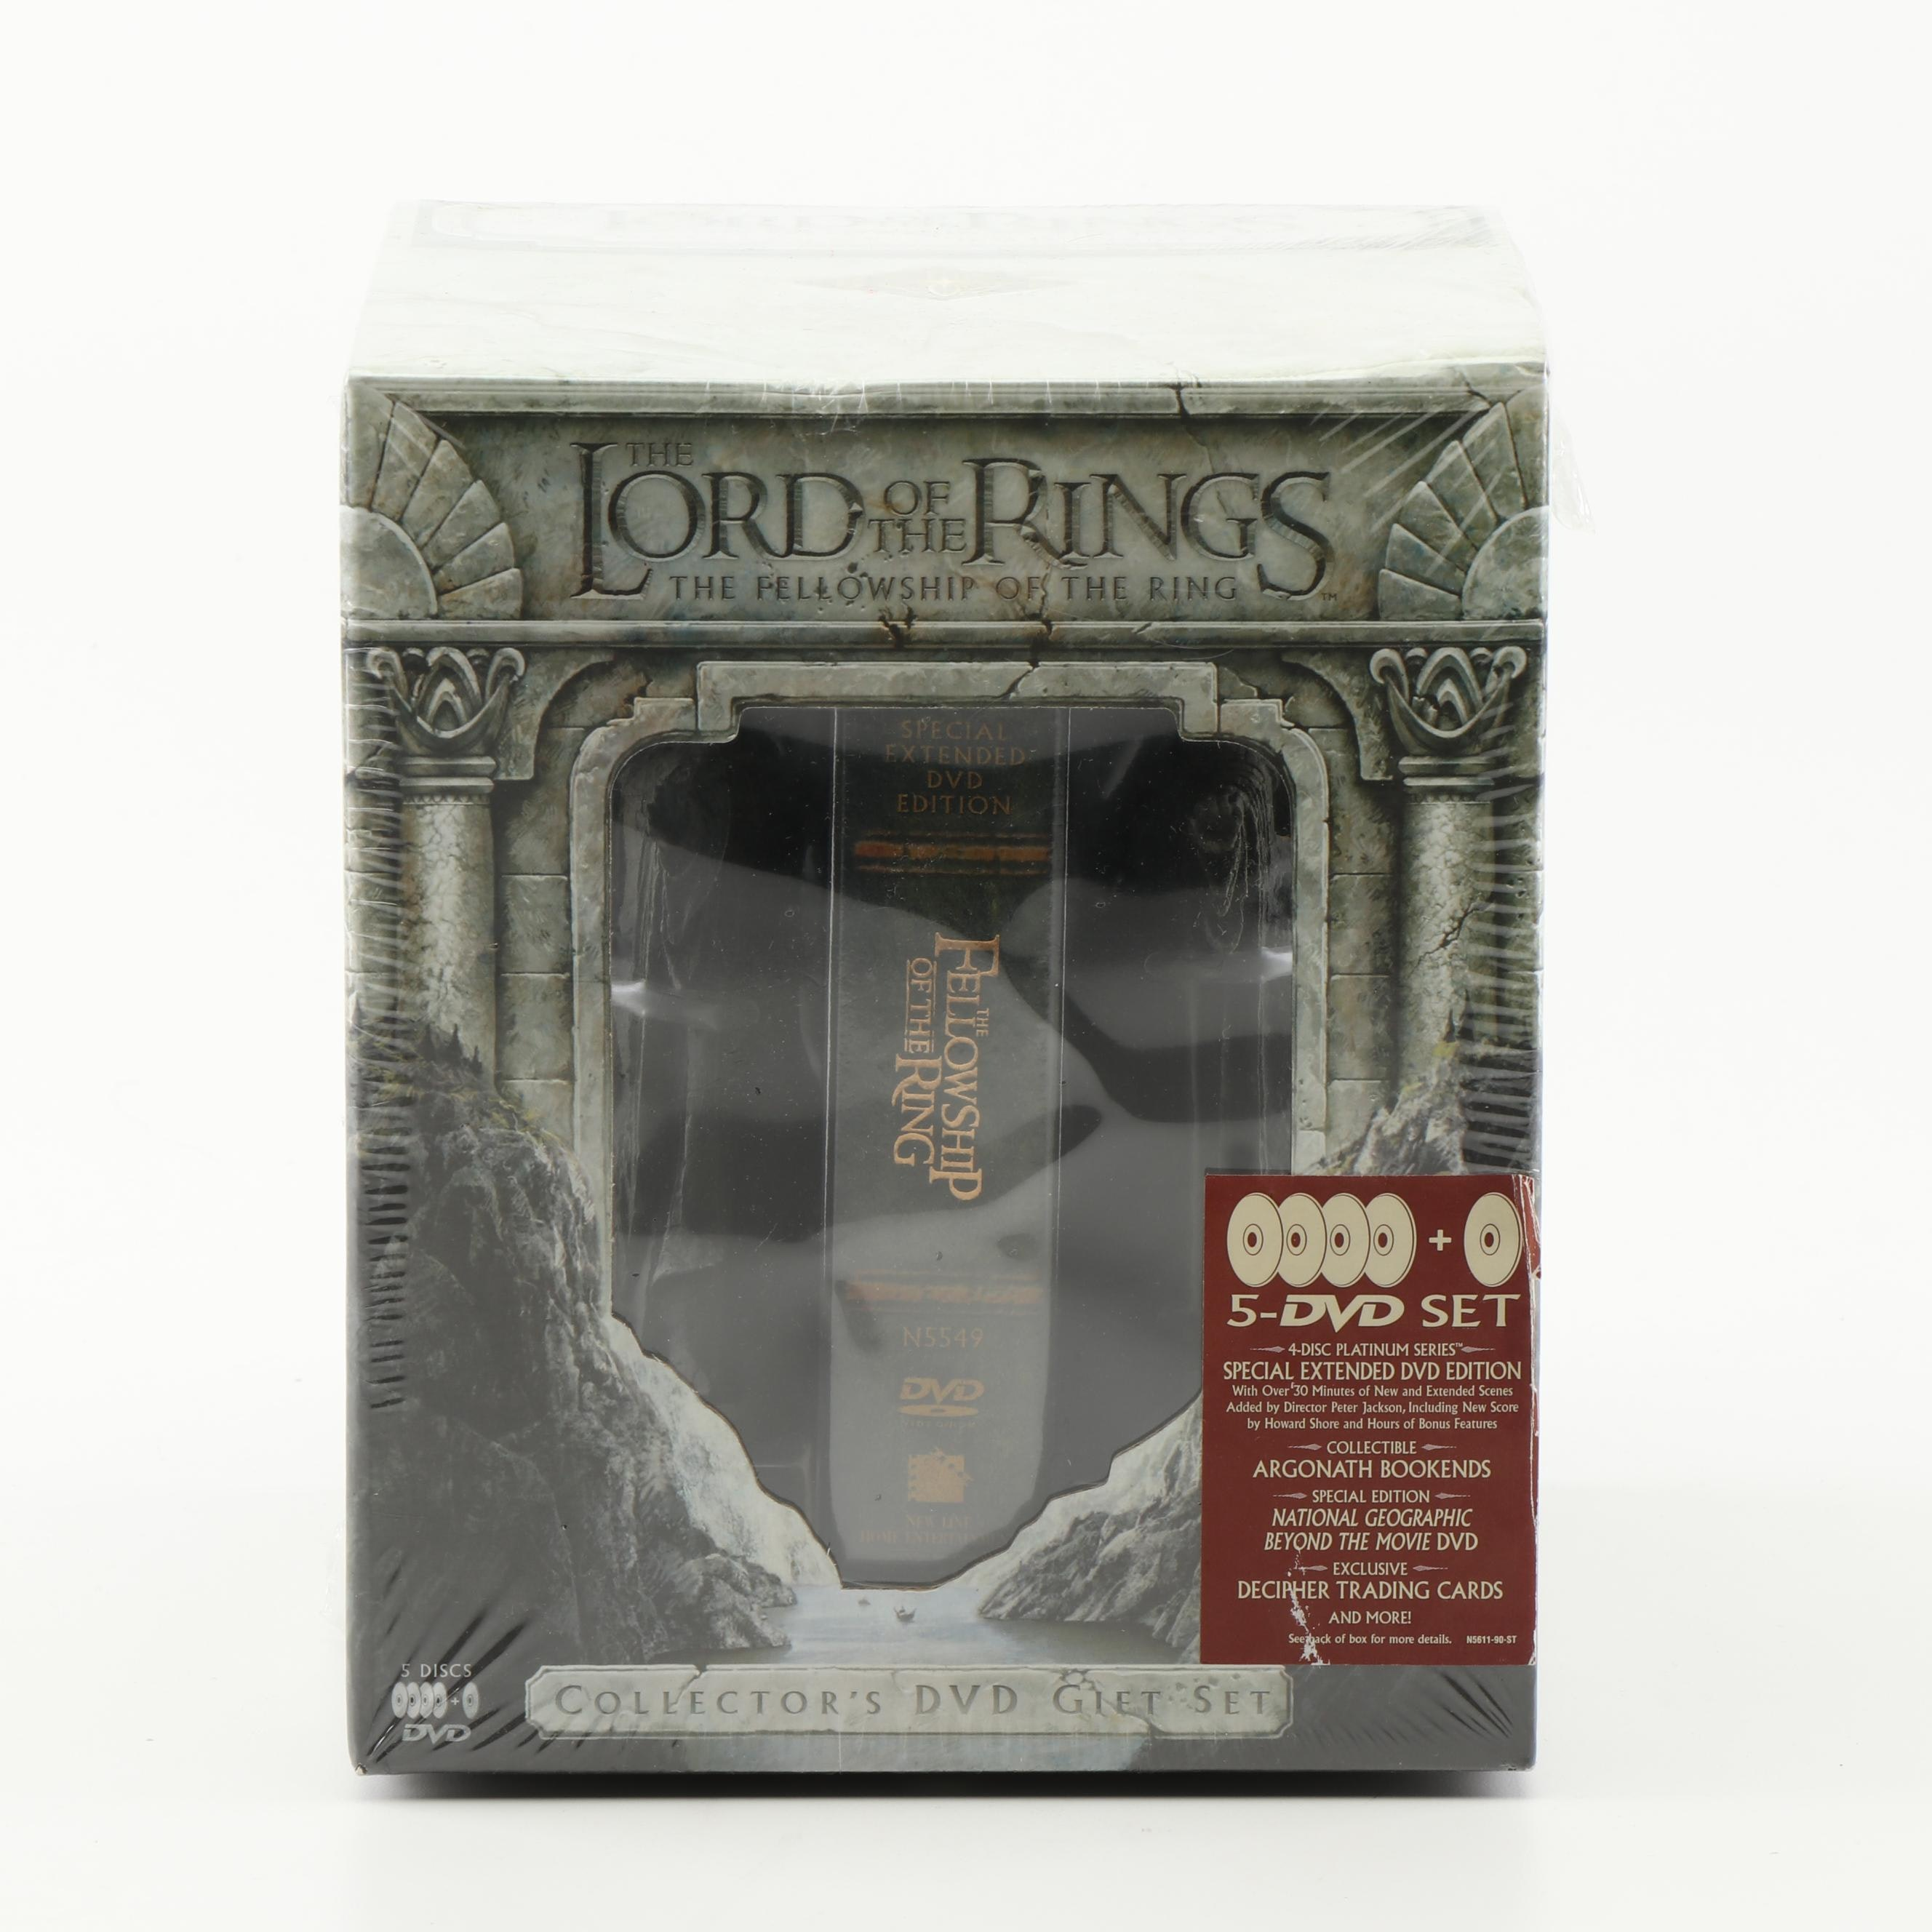 """""""The Lord of The Rings: The Fellowship of the Ring"""" Collector's DVD Gift Set"""